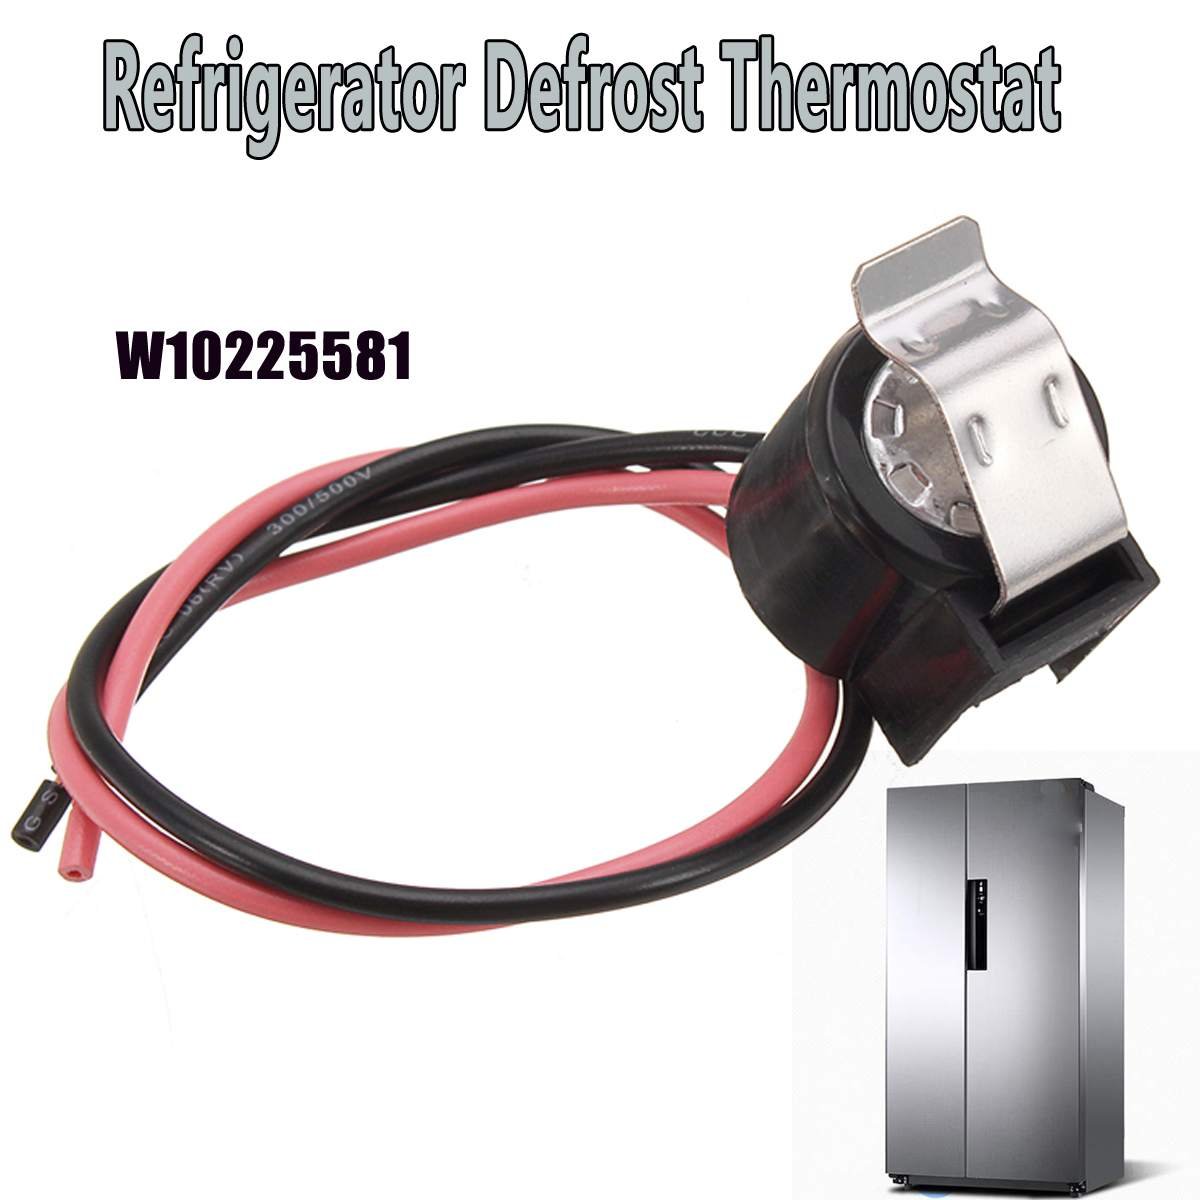 Refrigerator Defrost Thermostat Replacement For Whirlpool For Kenmore W10225581